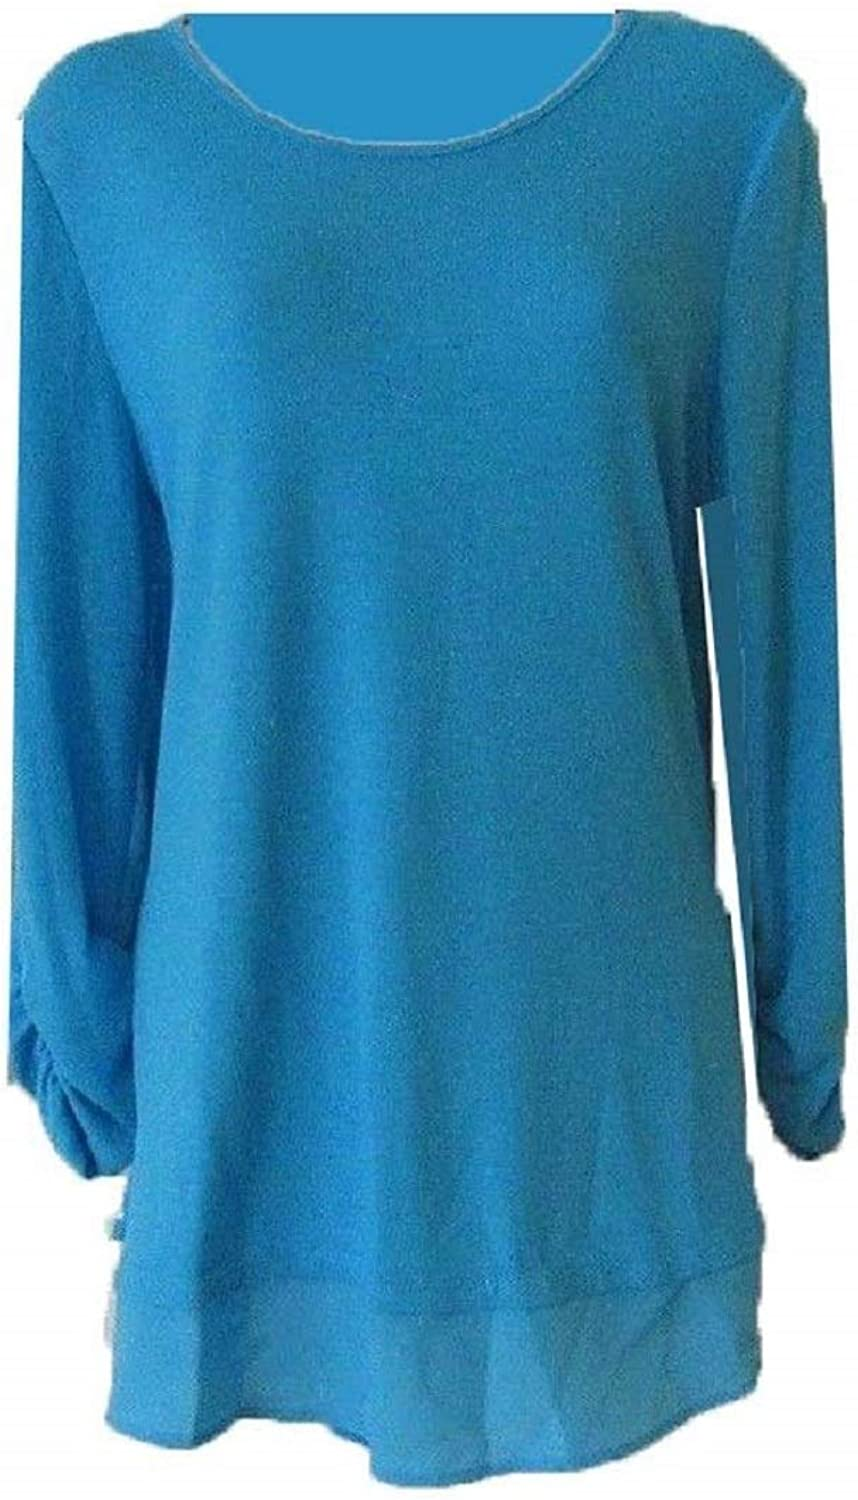 Grace Elements Womens 3 4 Sleeve Top